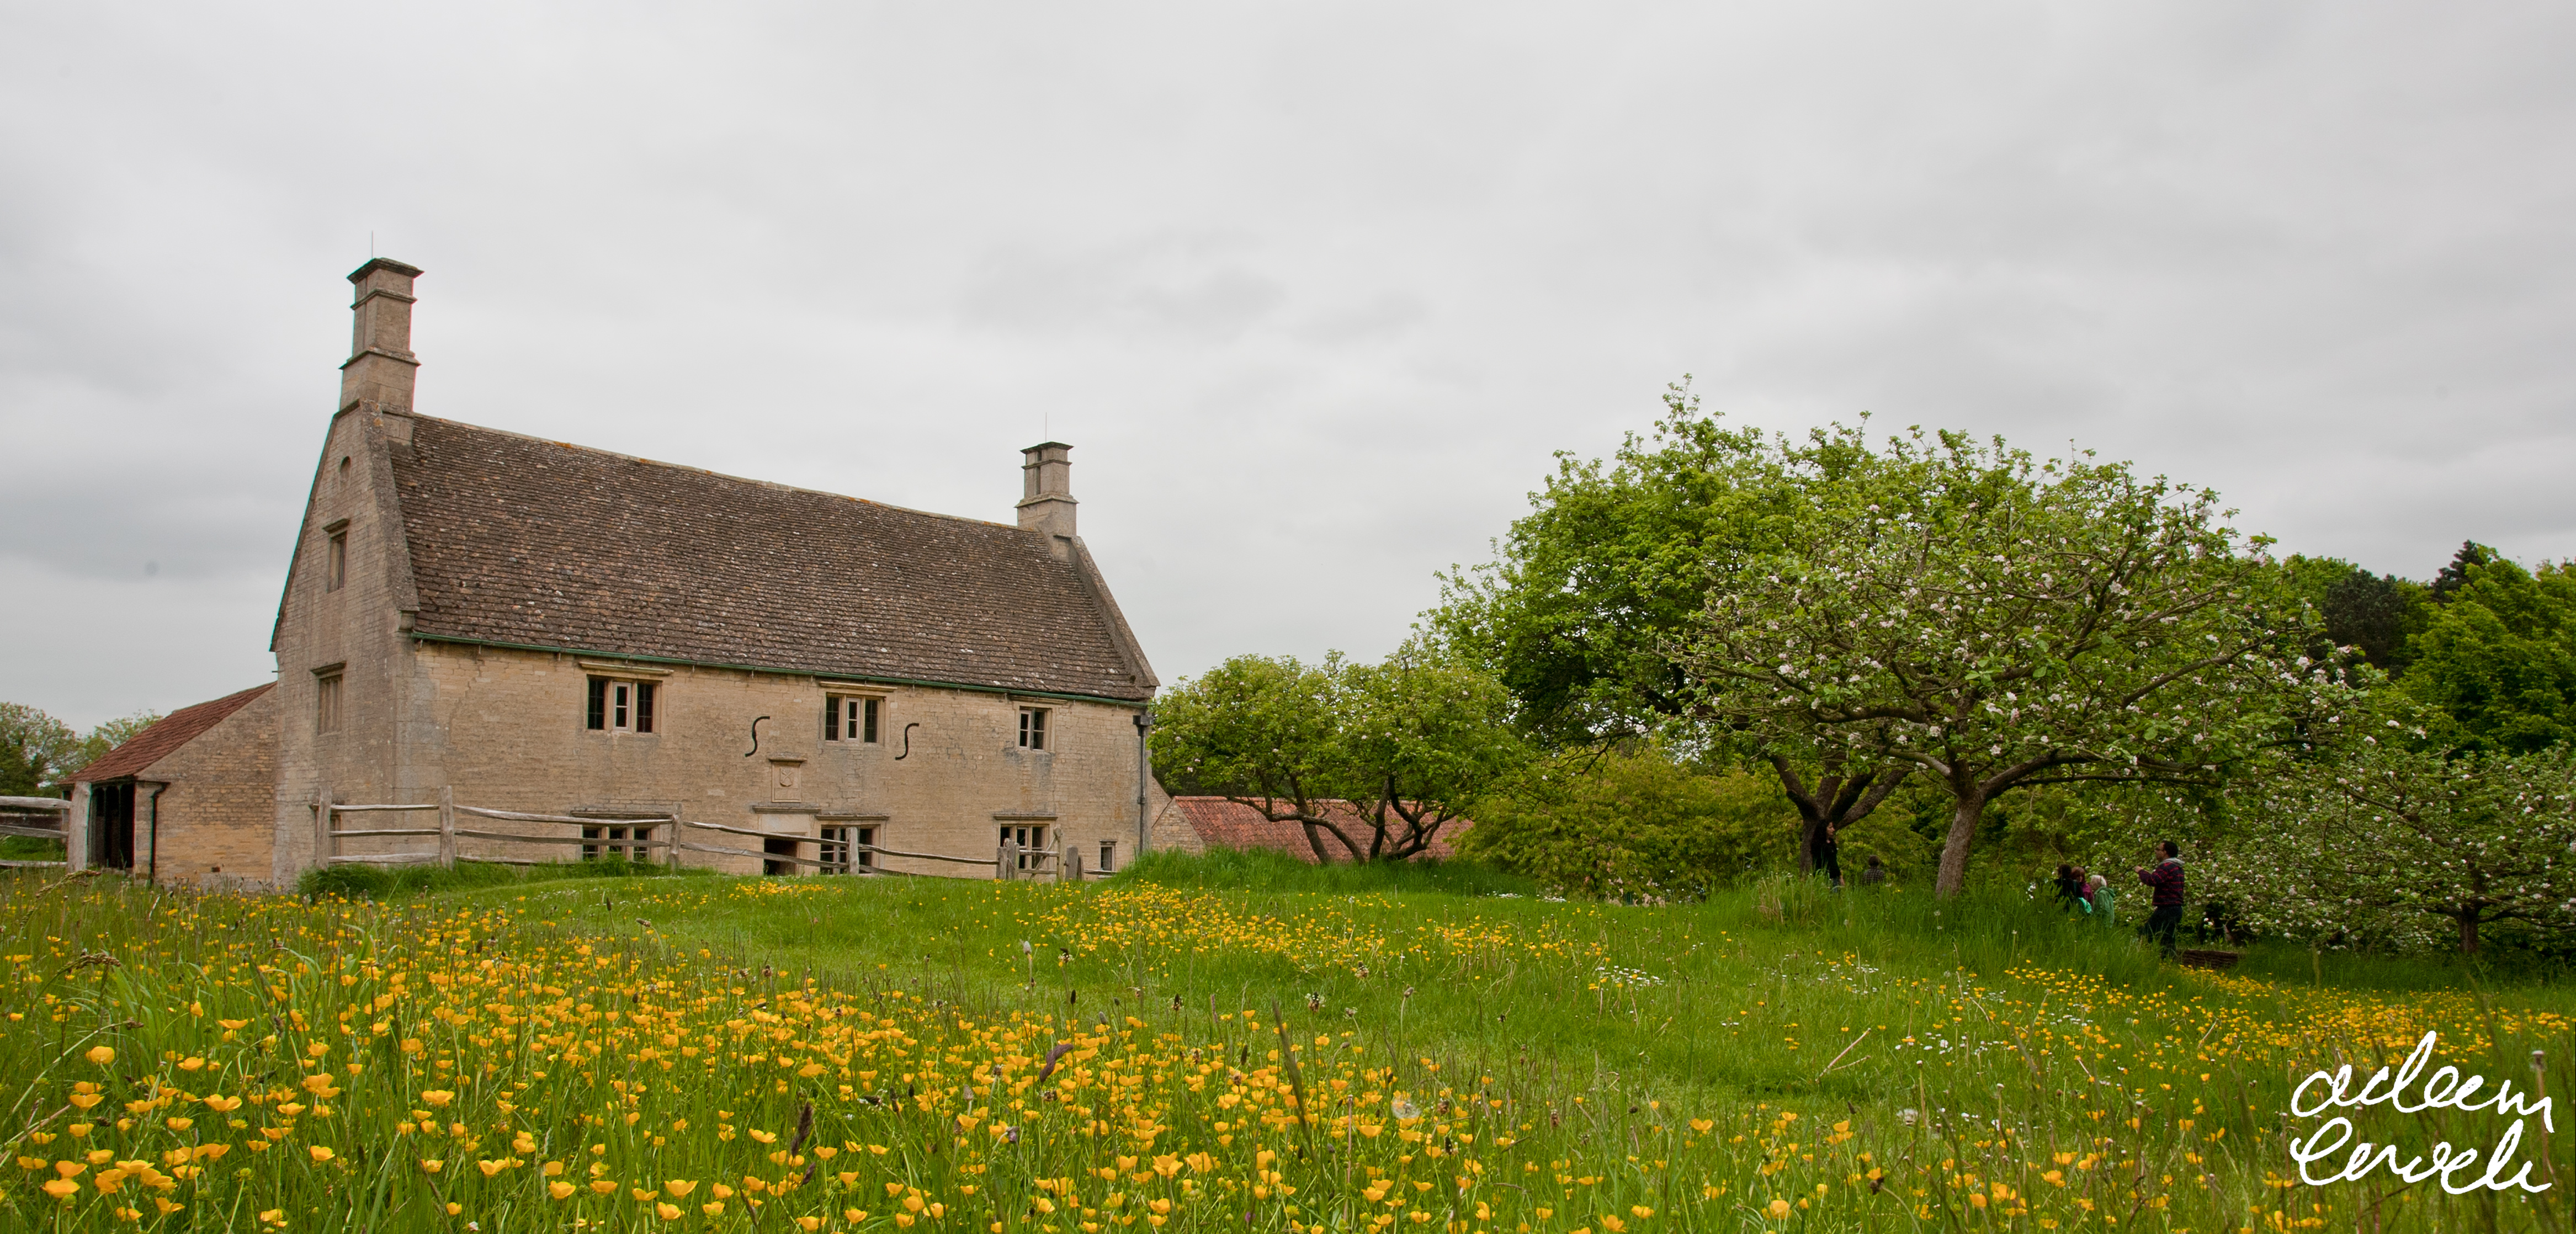 Woolthorpe Manor - 25th May 2015